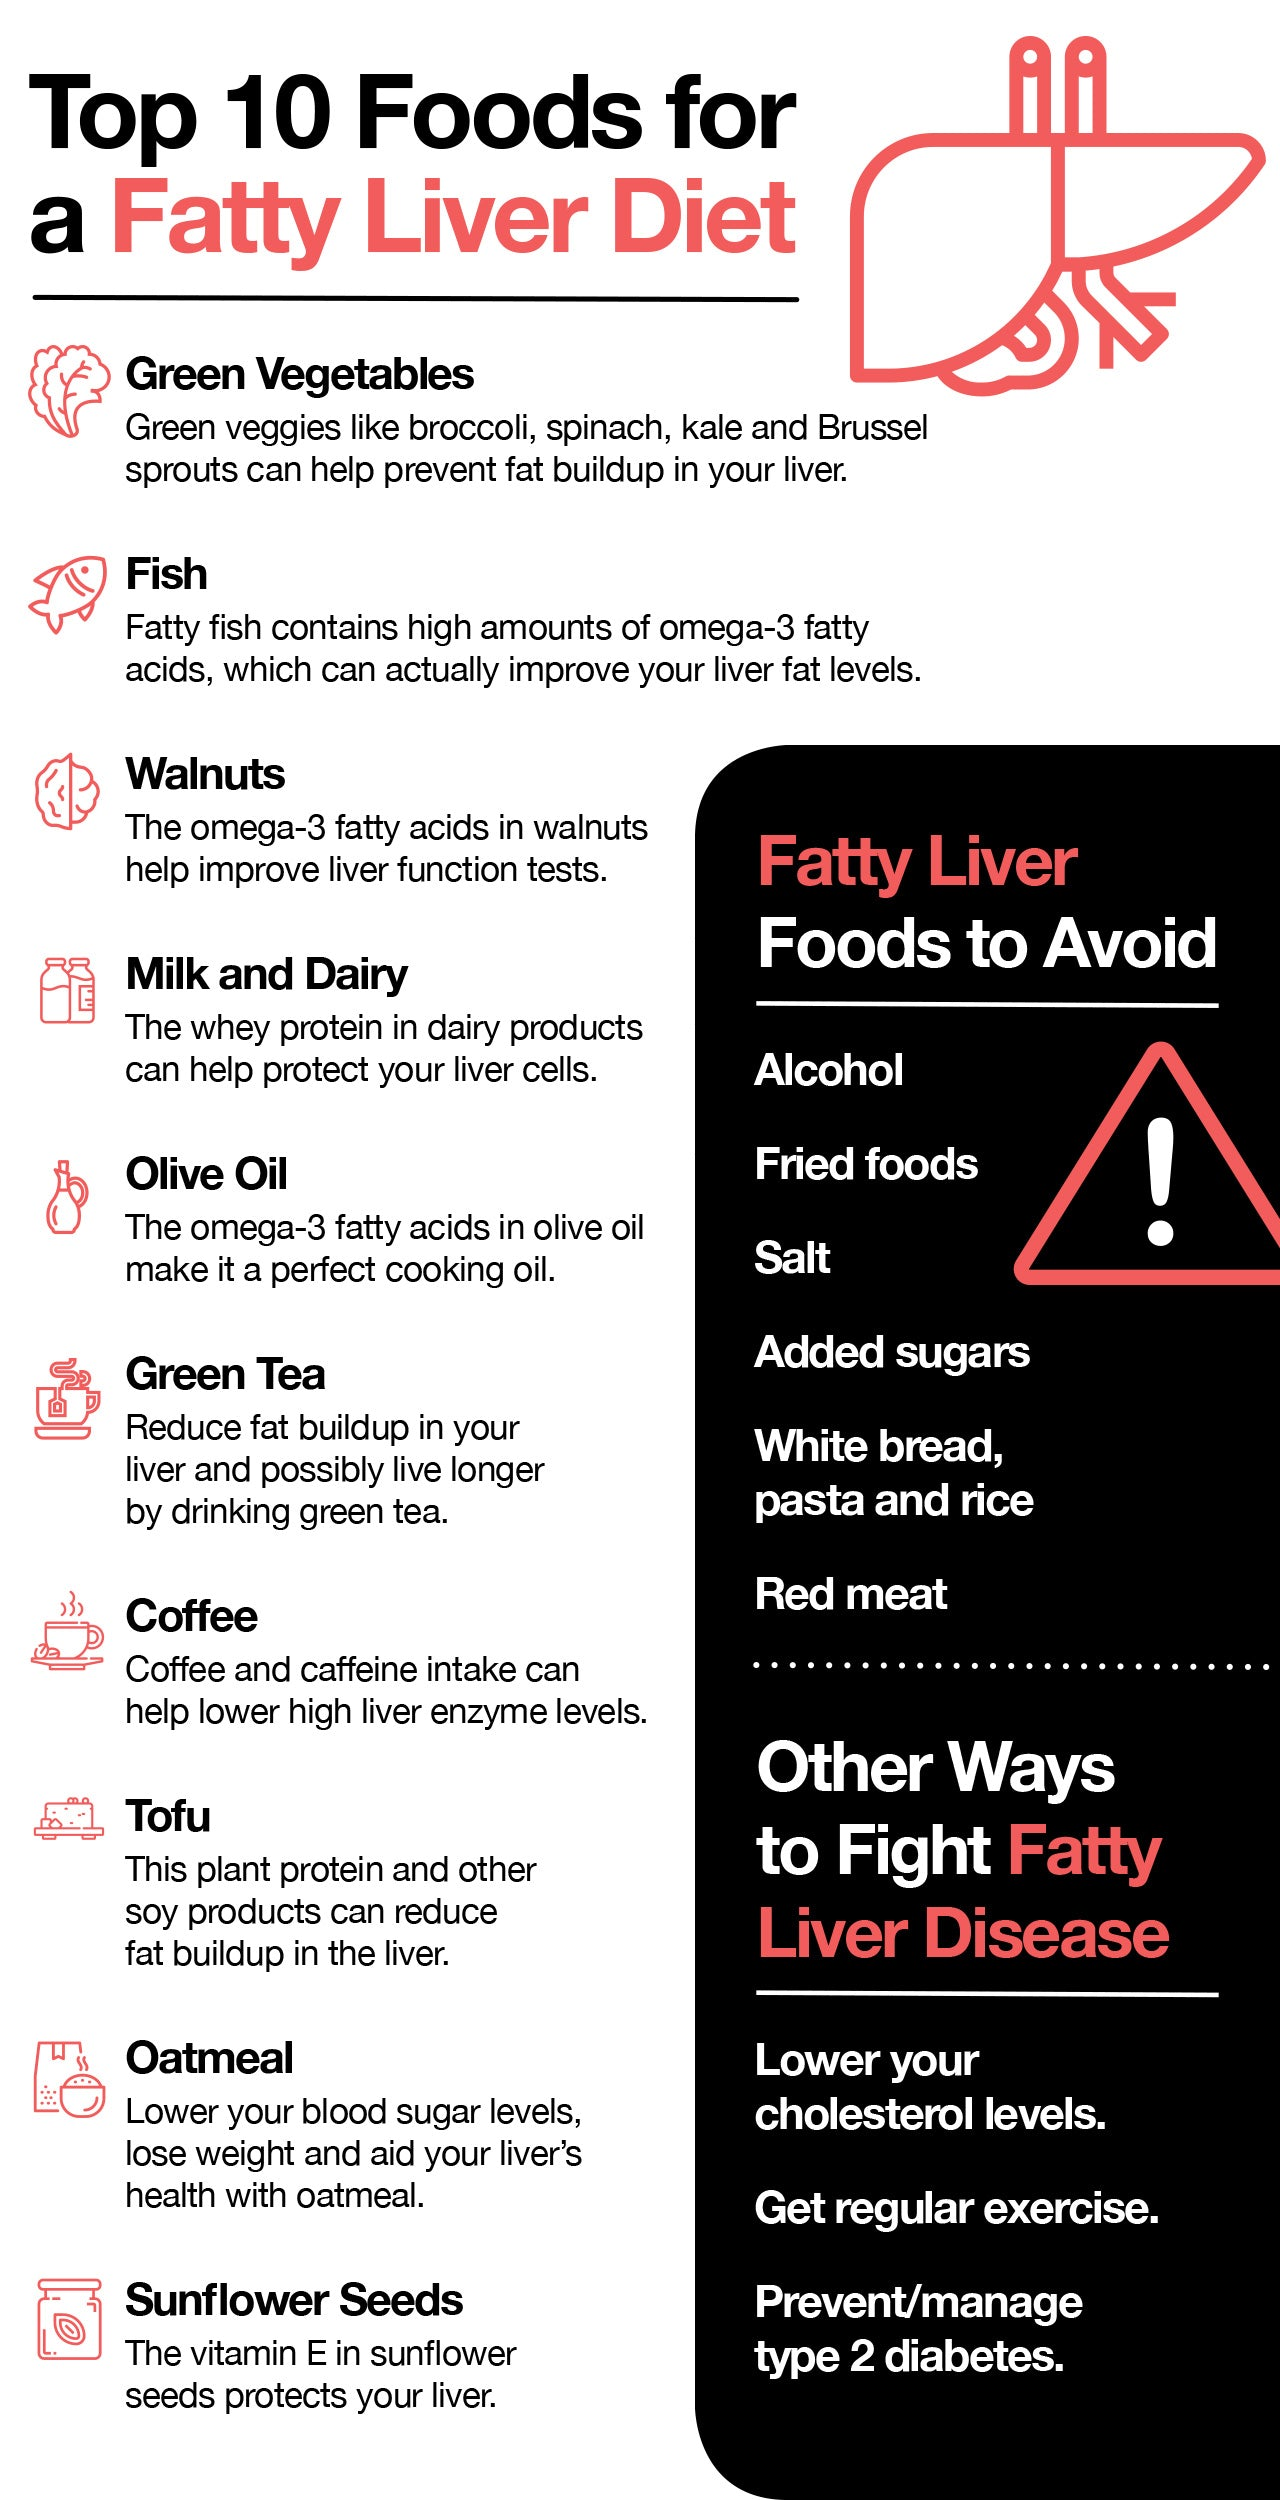 Top 10 fatty liver diet foods.